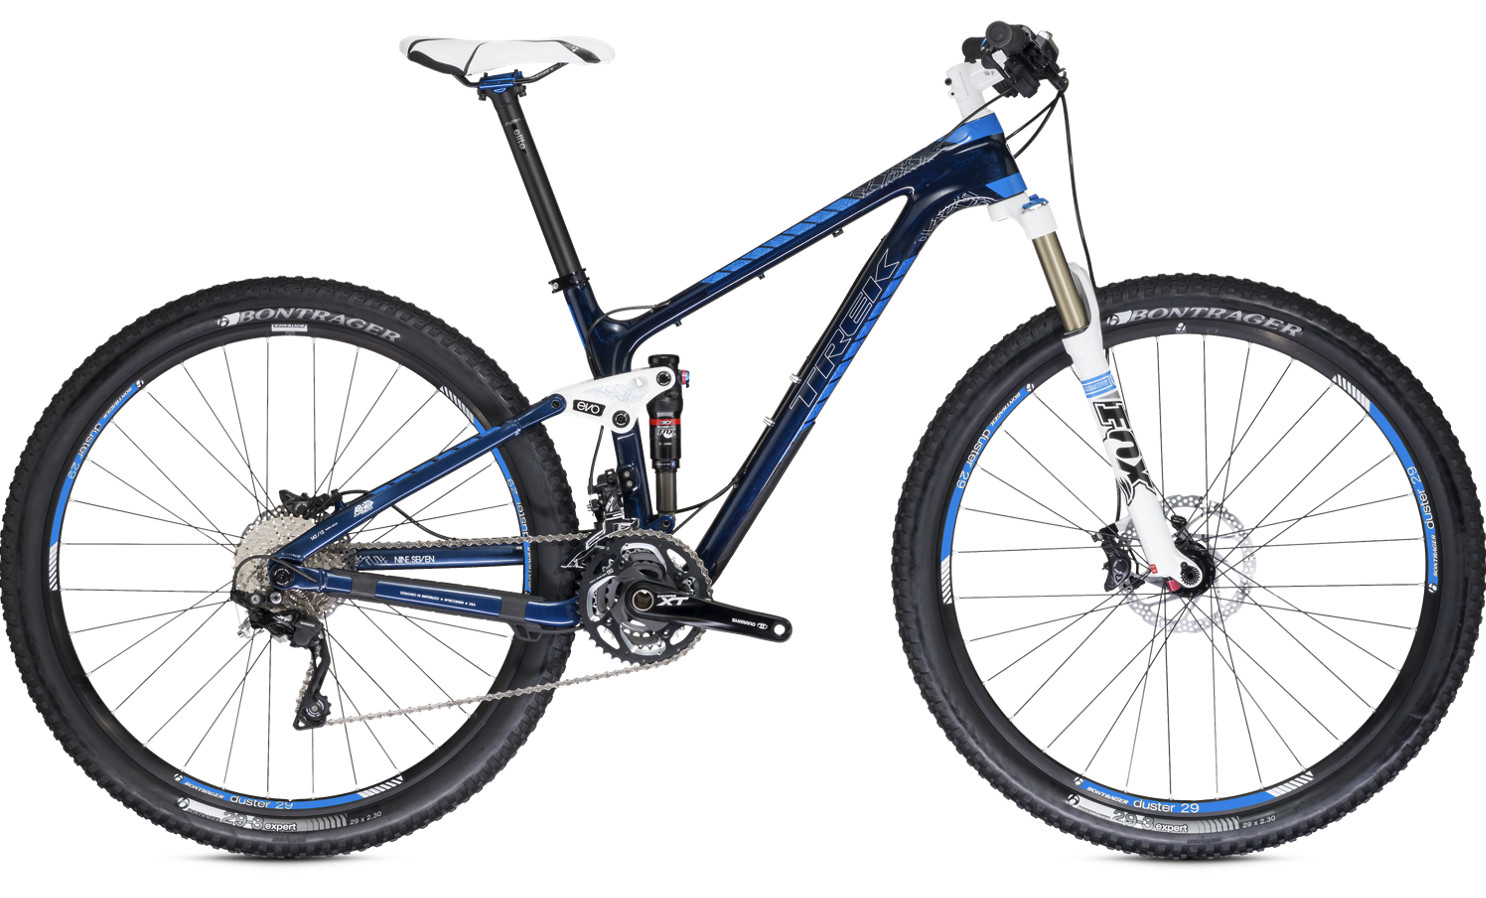 2014 Trek Fuel EX 9.7 29 Bike